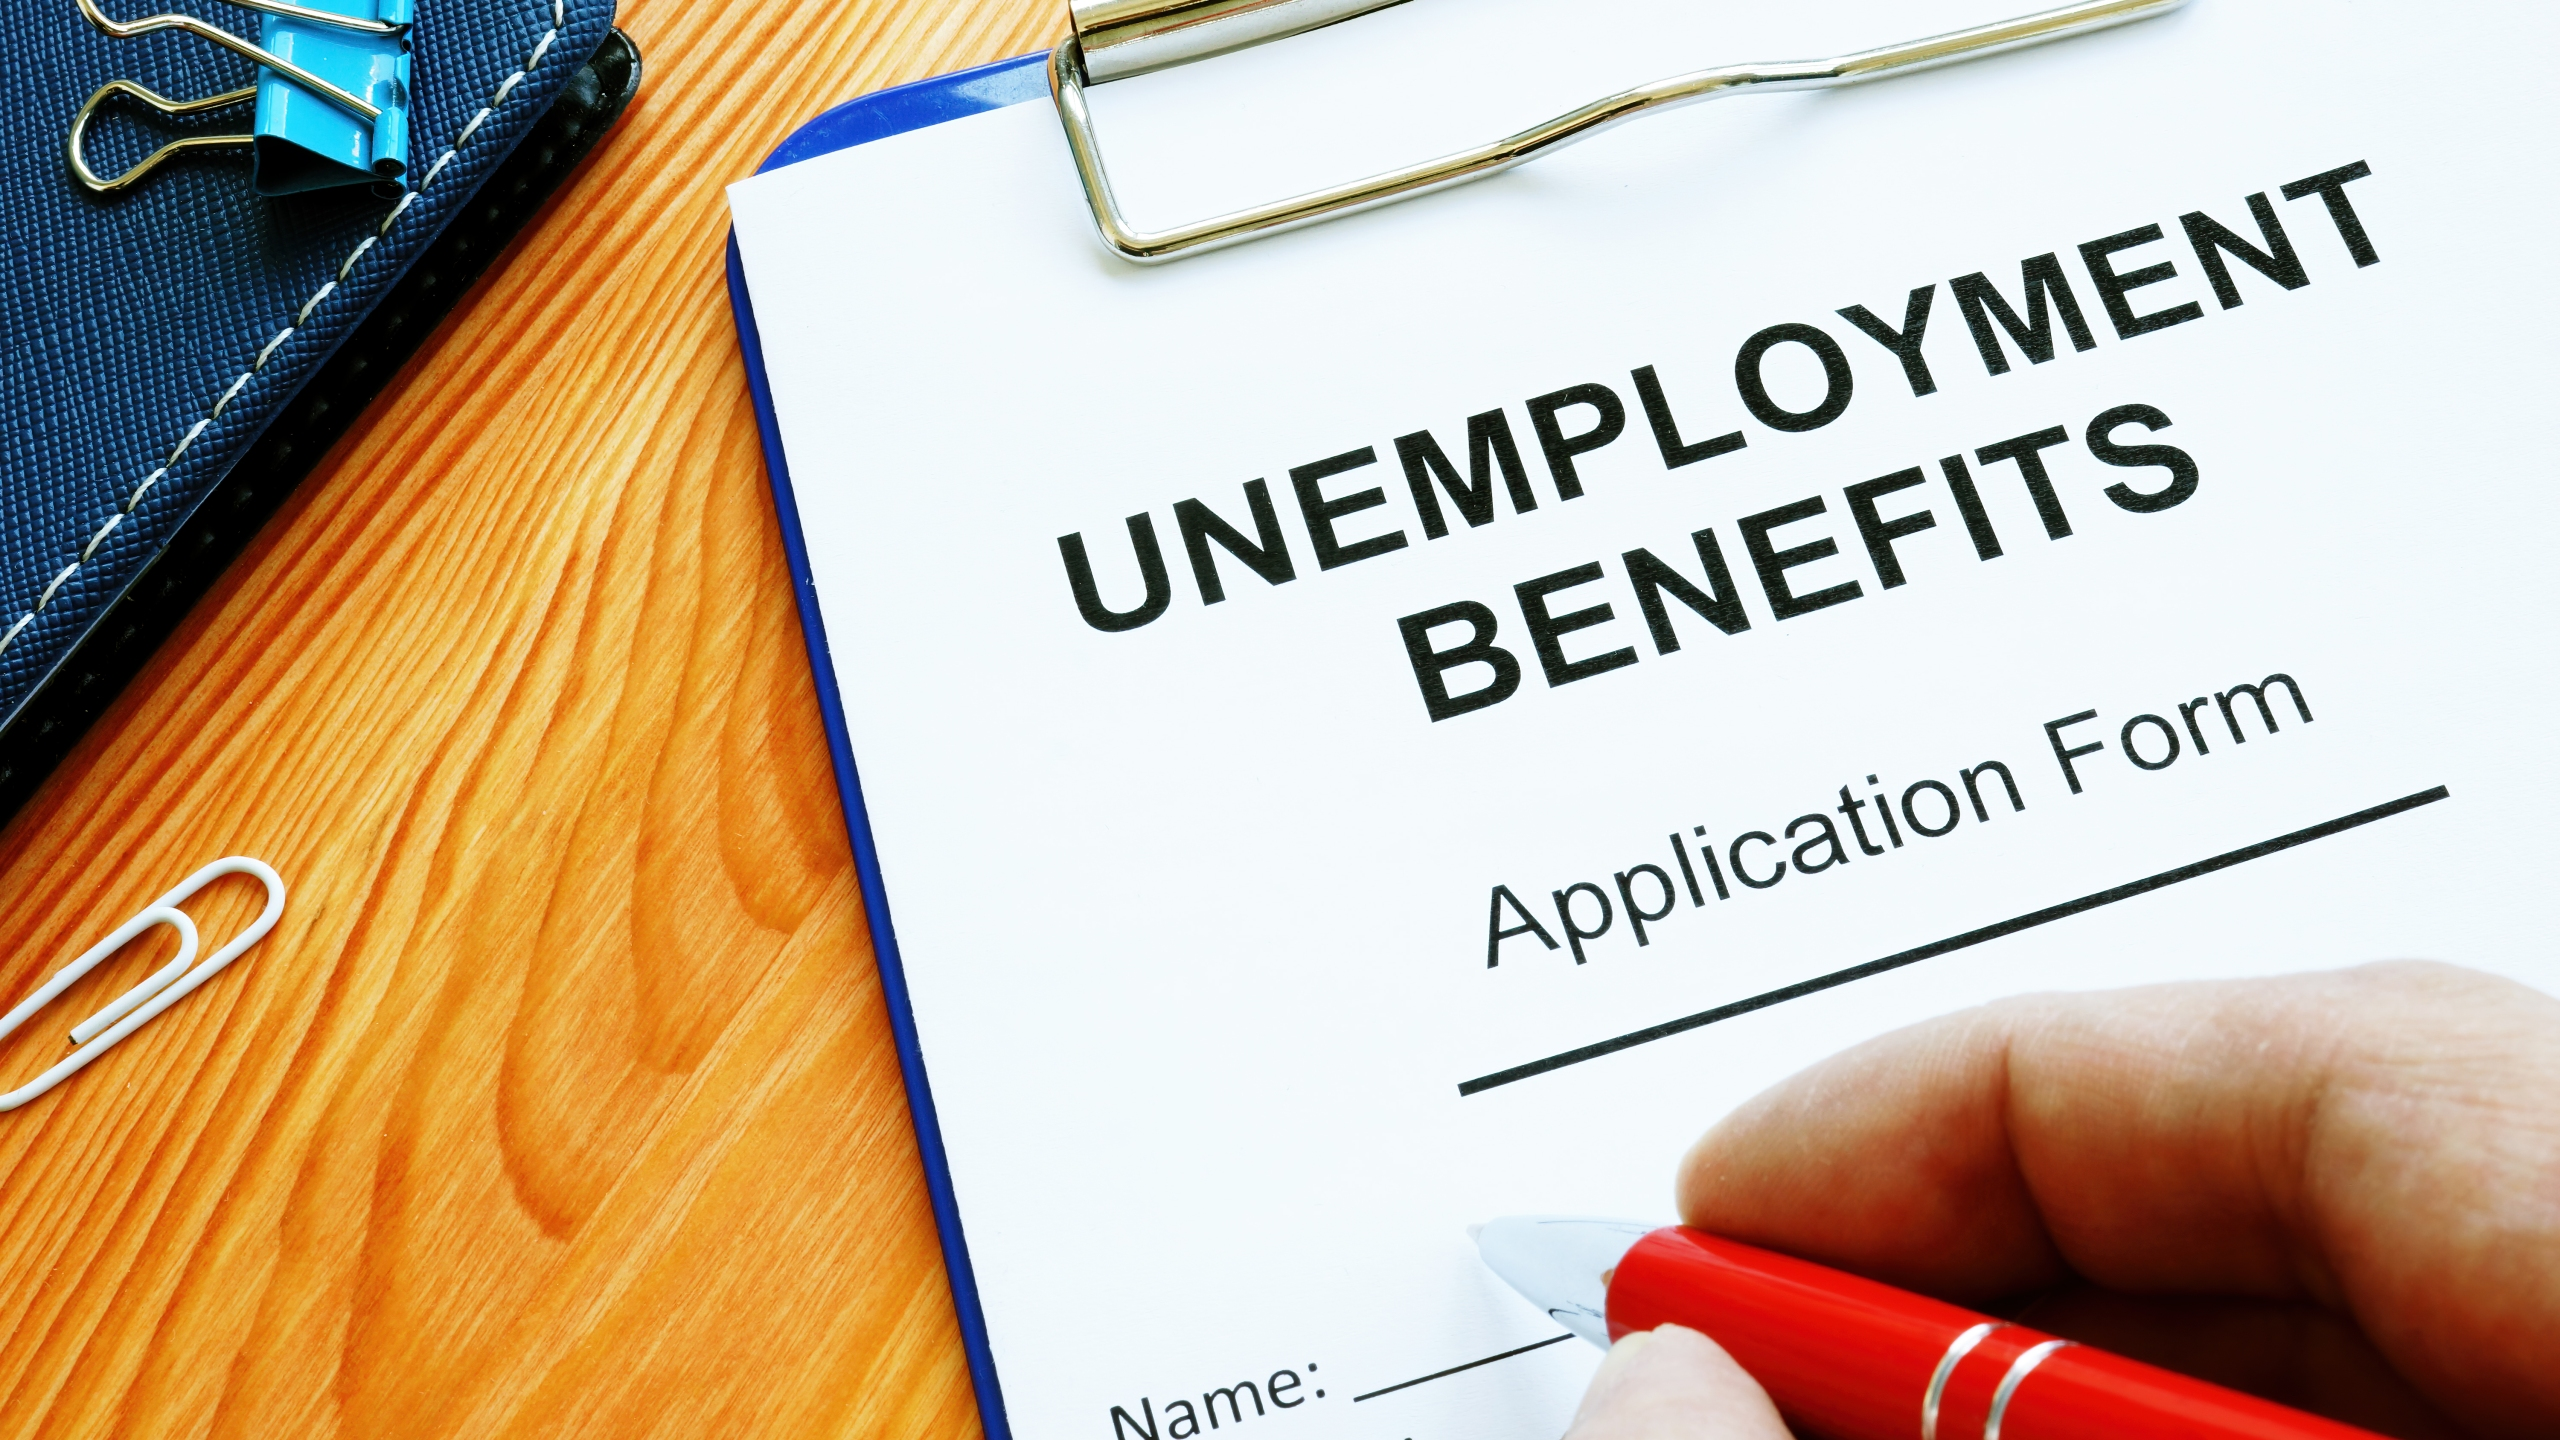 Unemployment benefits application form